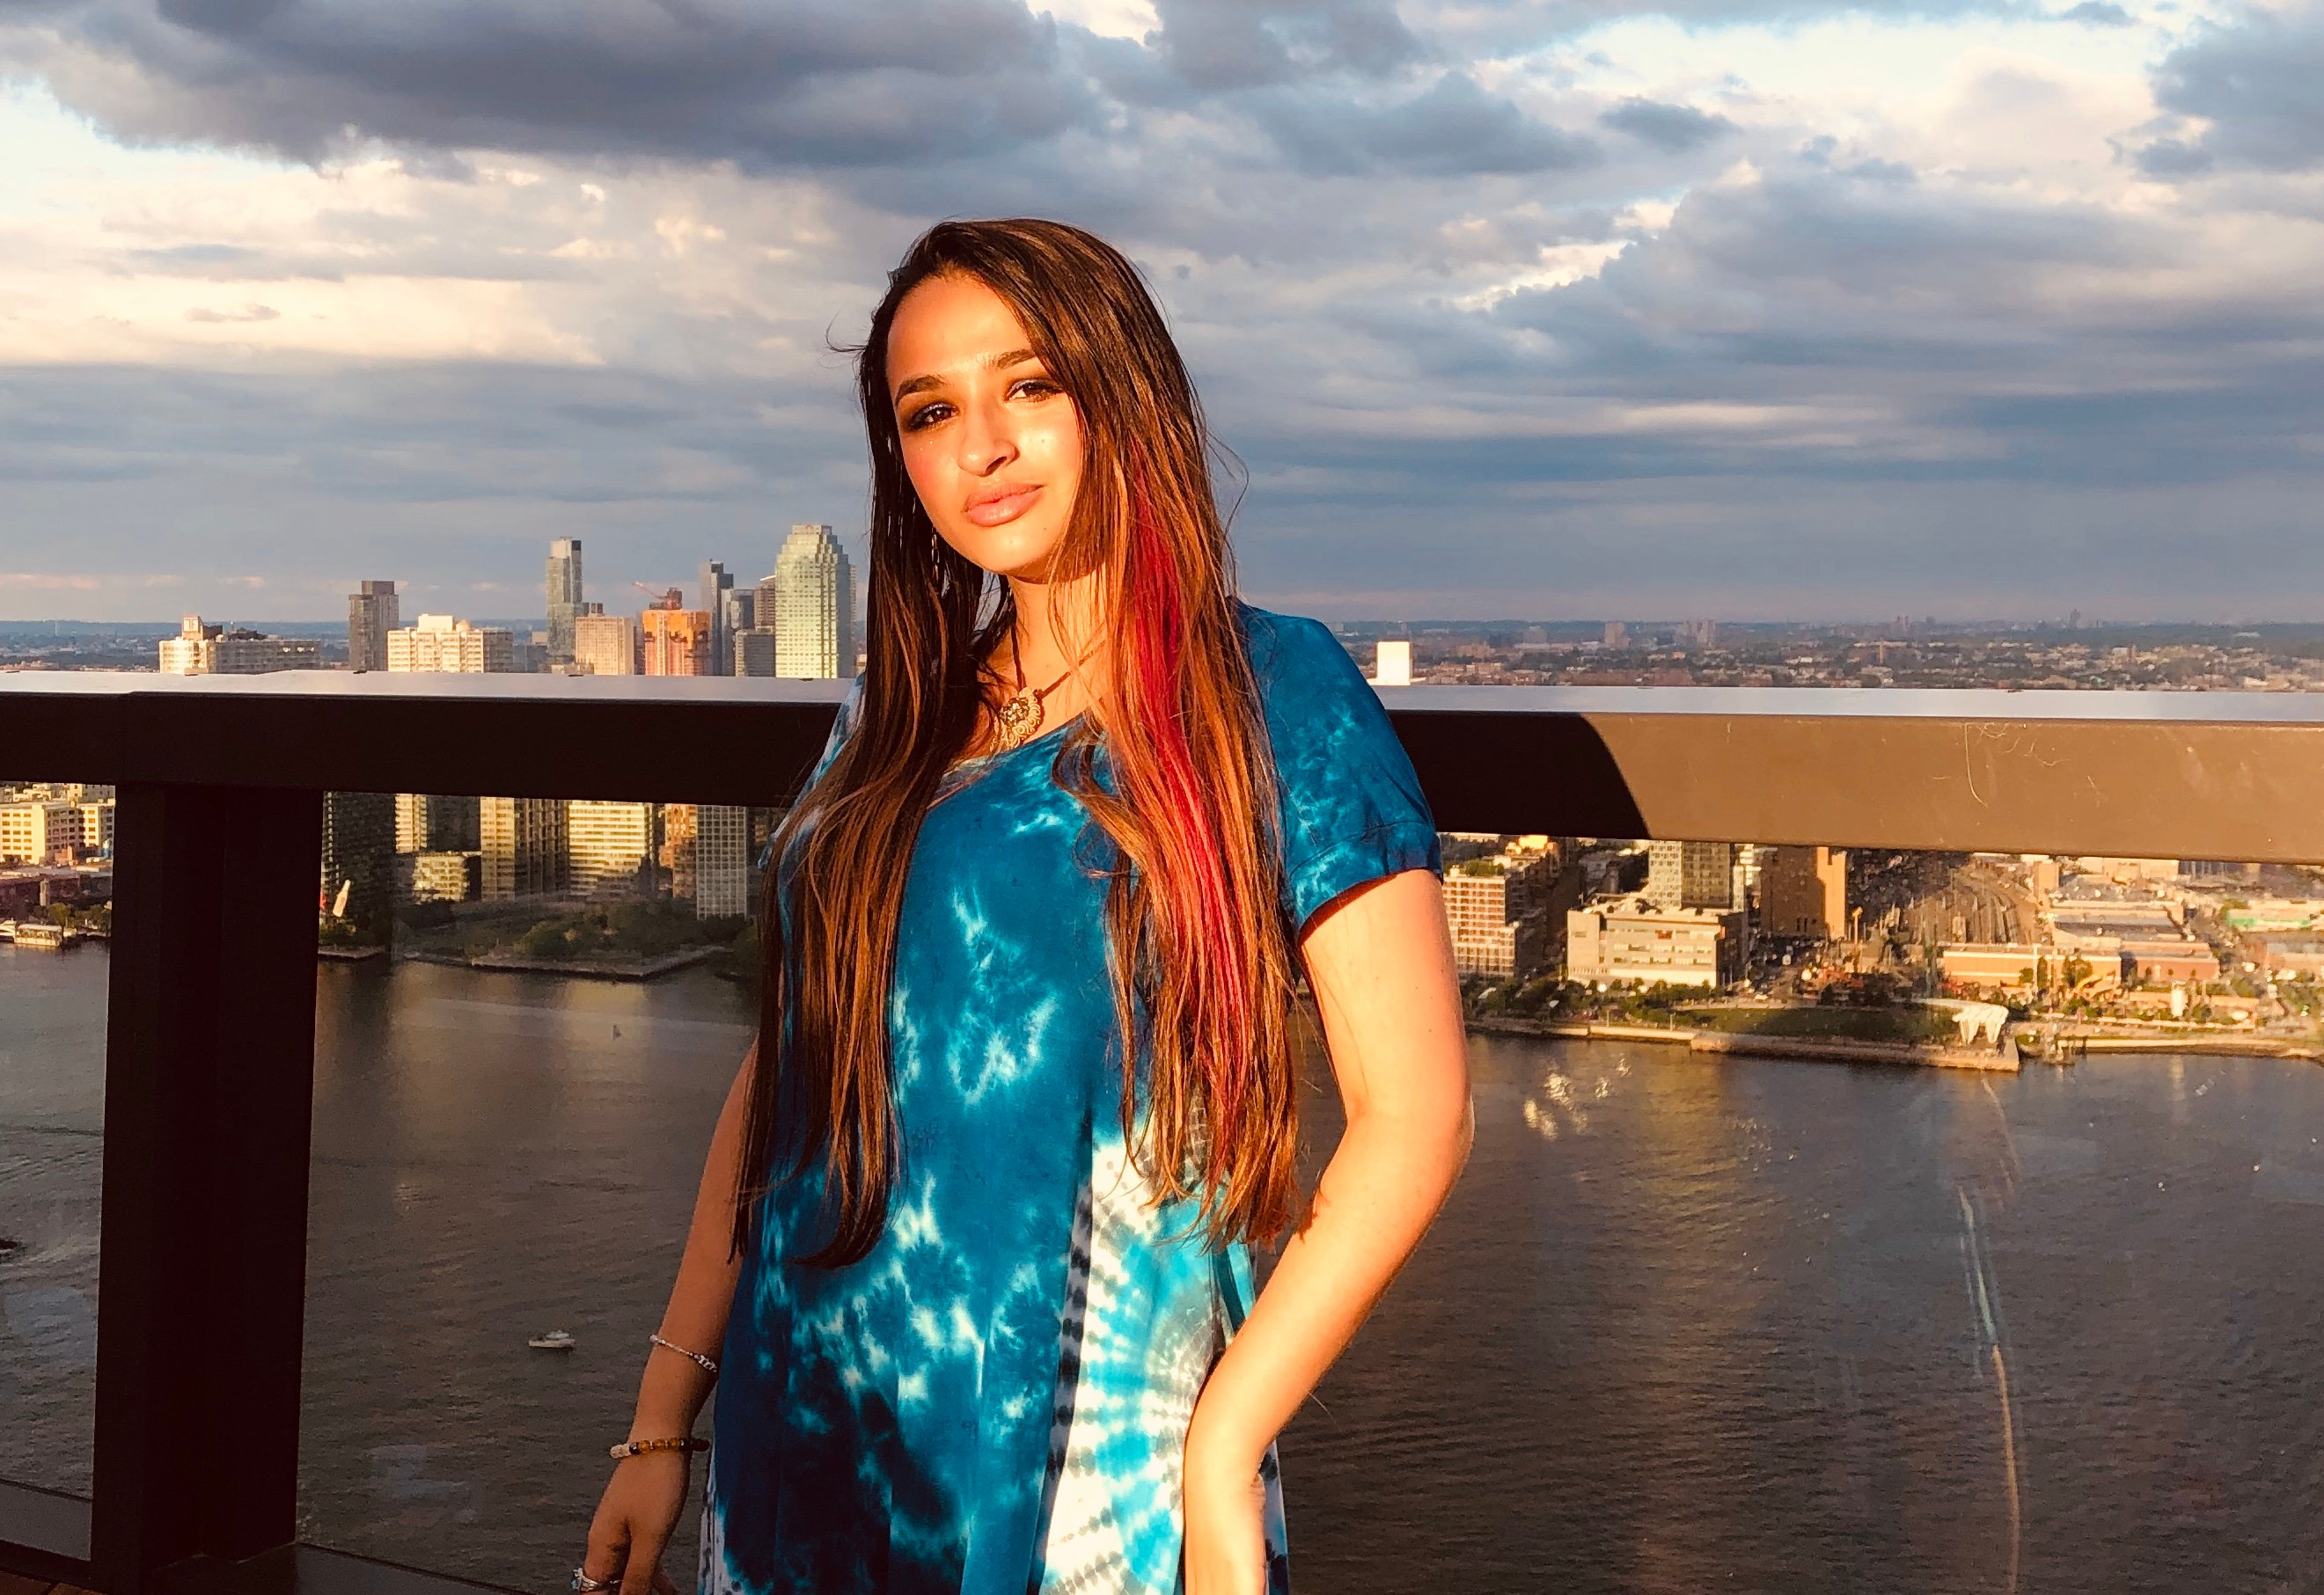 Jazz Jennings in NYC on June 6, 2019. Photo Credit: Lindsey Benoit O'Connell for Thrive Global.